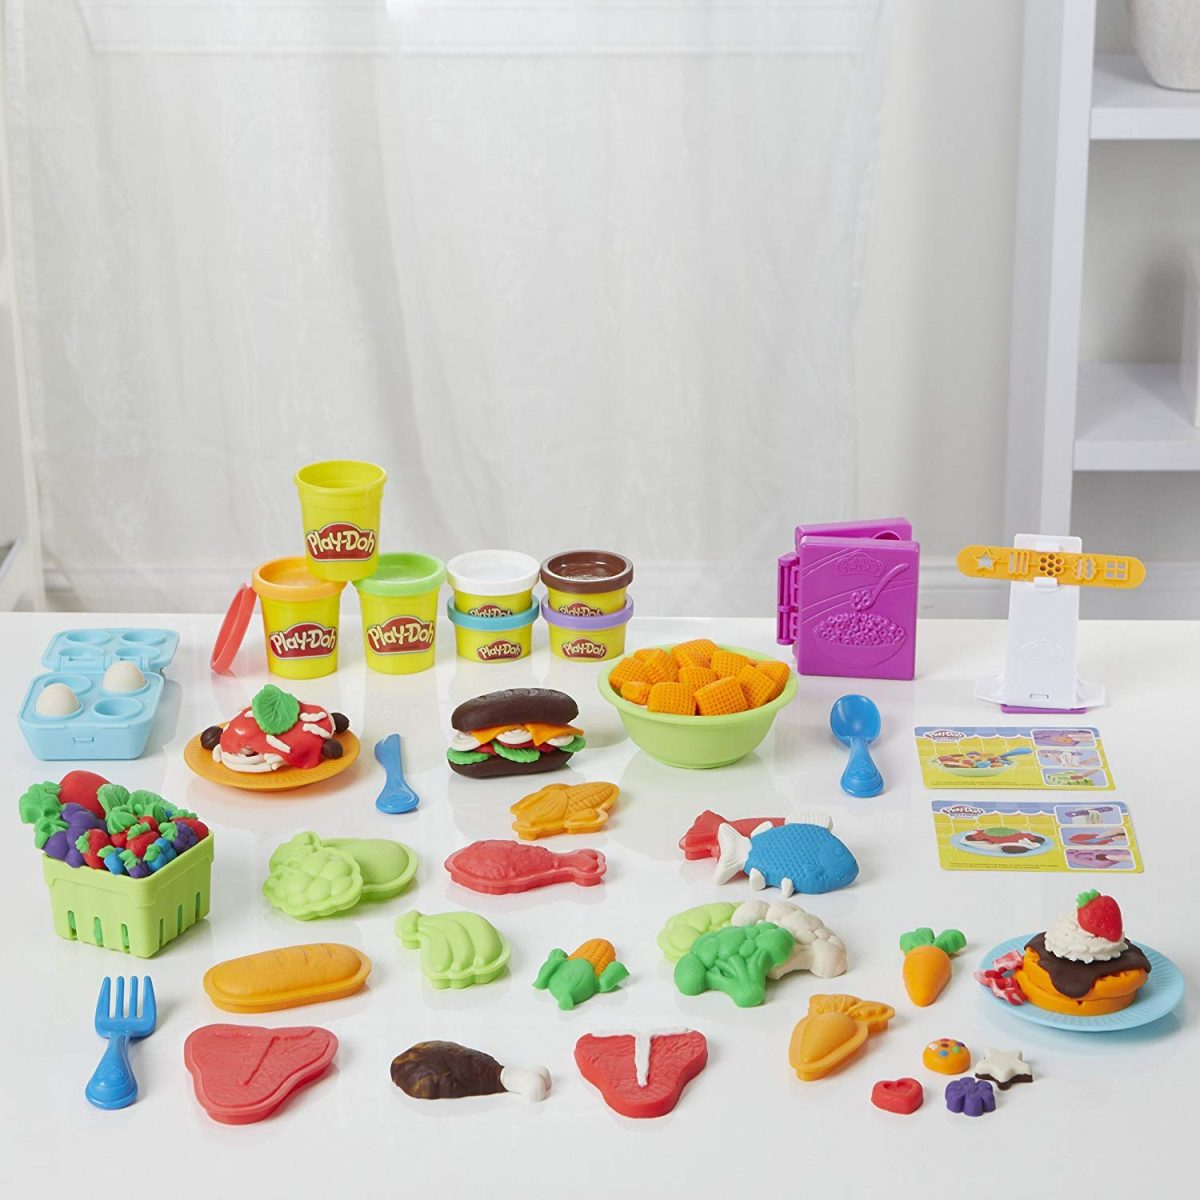 kitchen play doh set